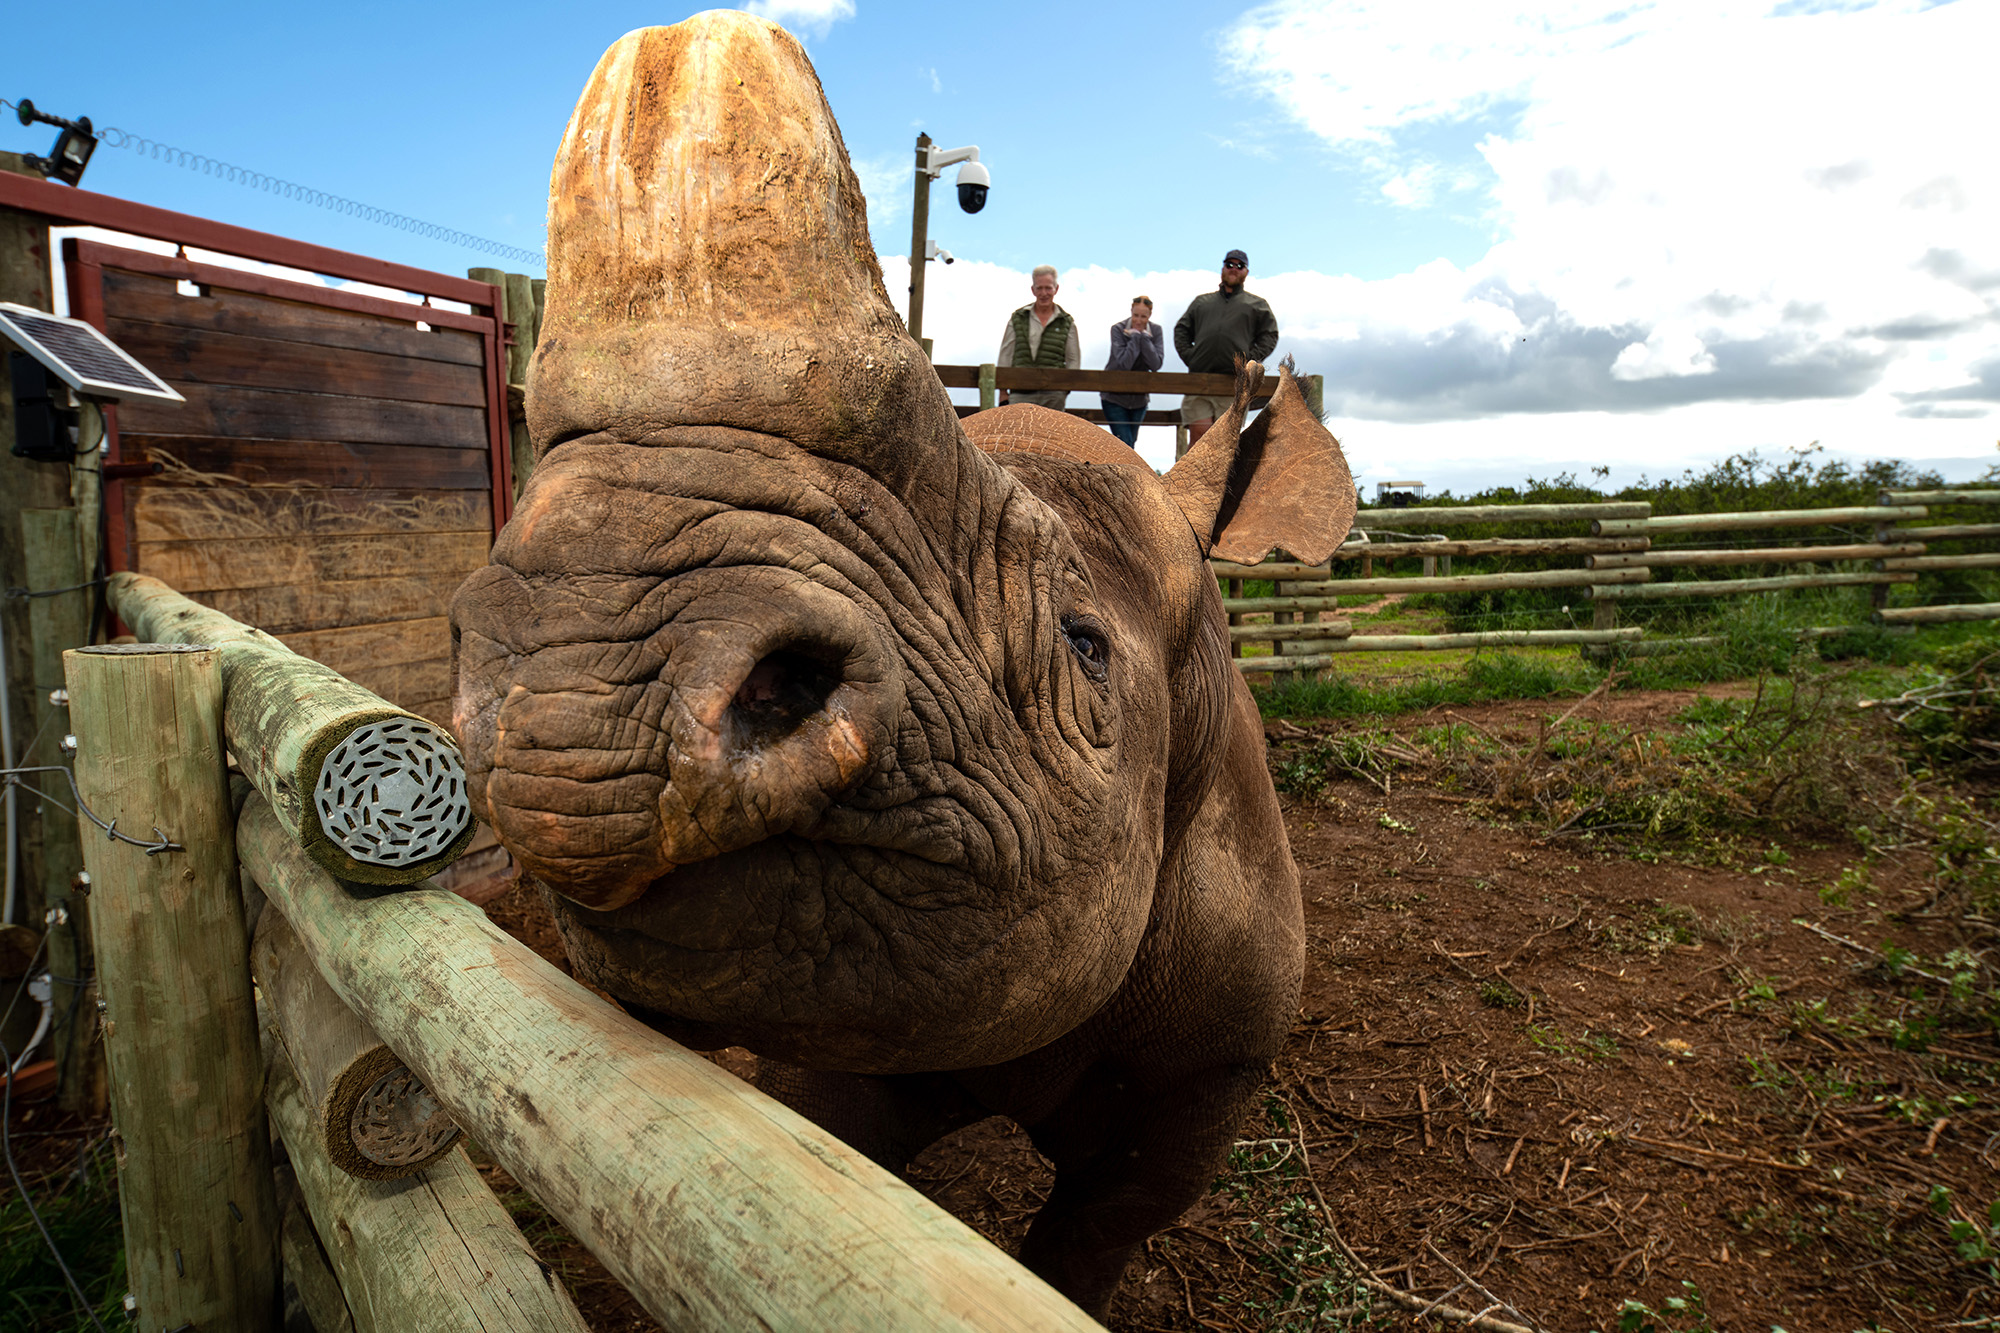 OUR BURNING PLANET 168: Seeing conservation through a blind rhino's eyes